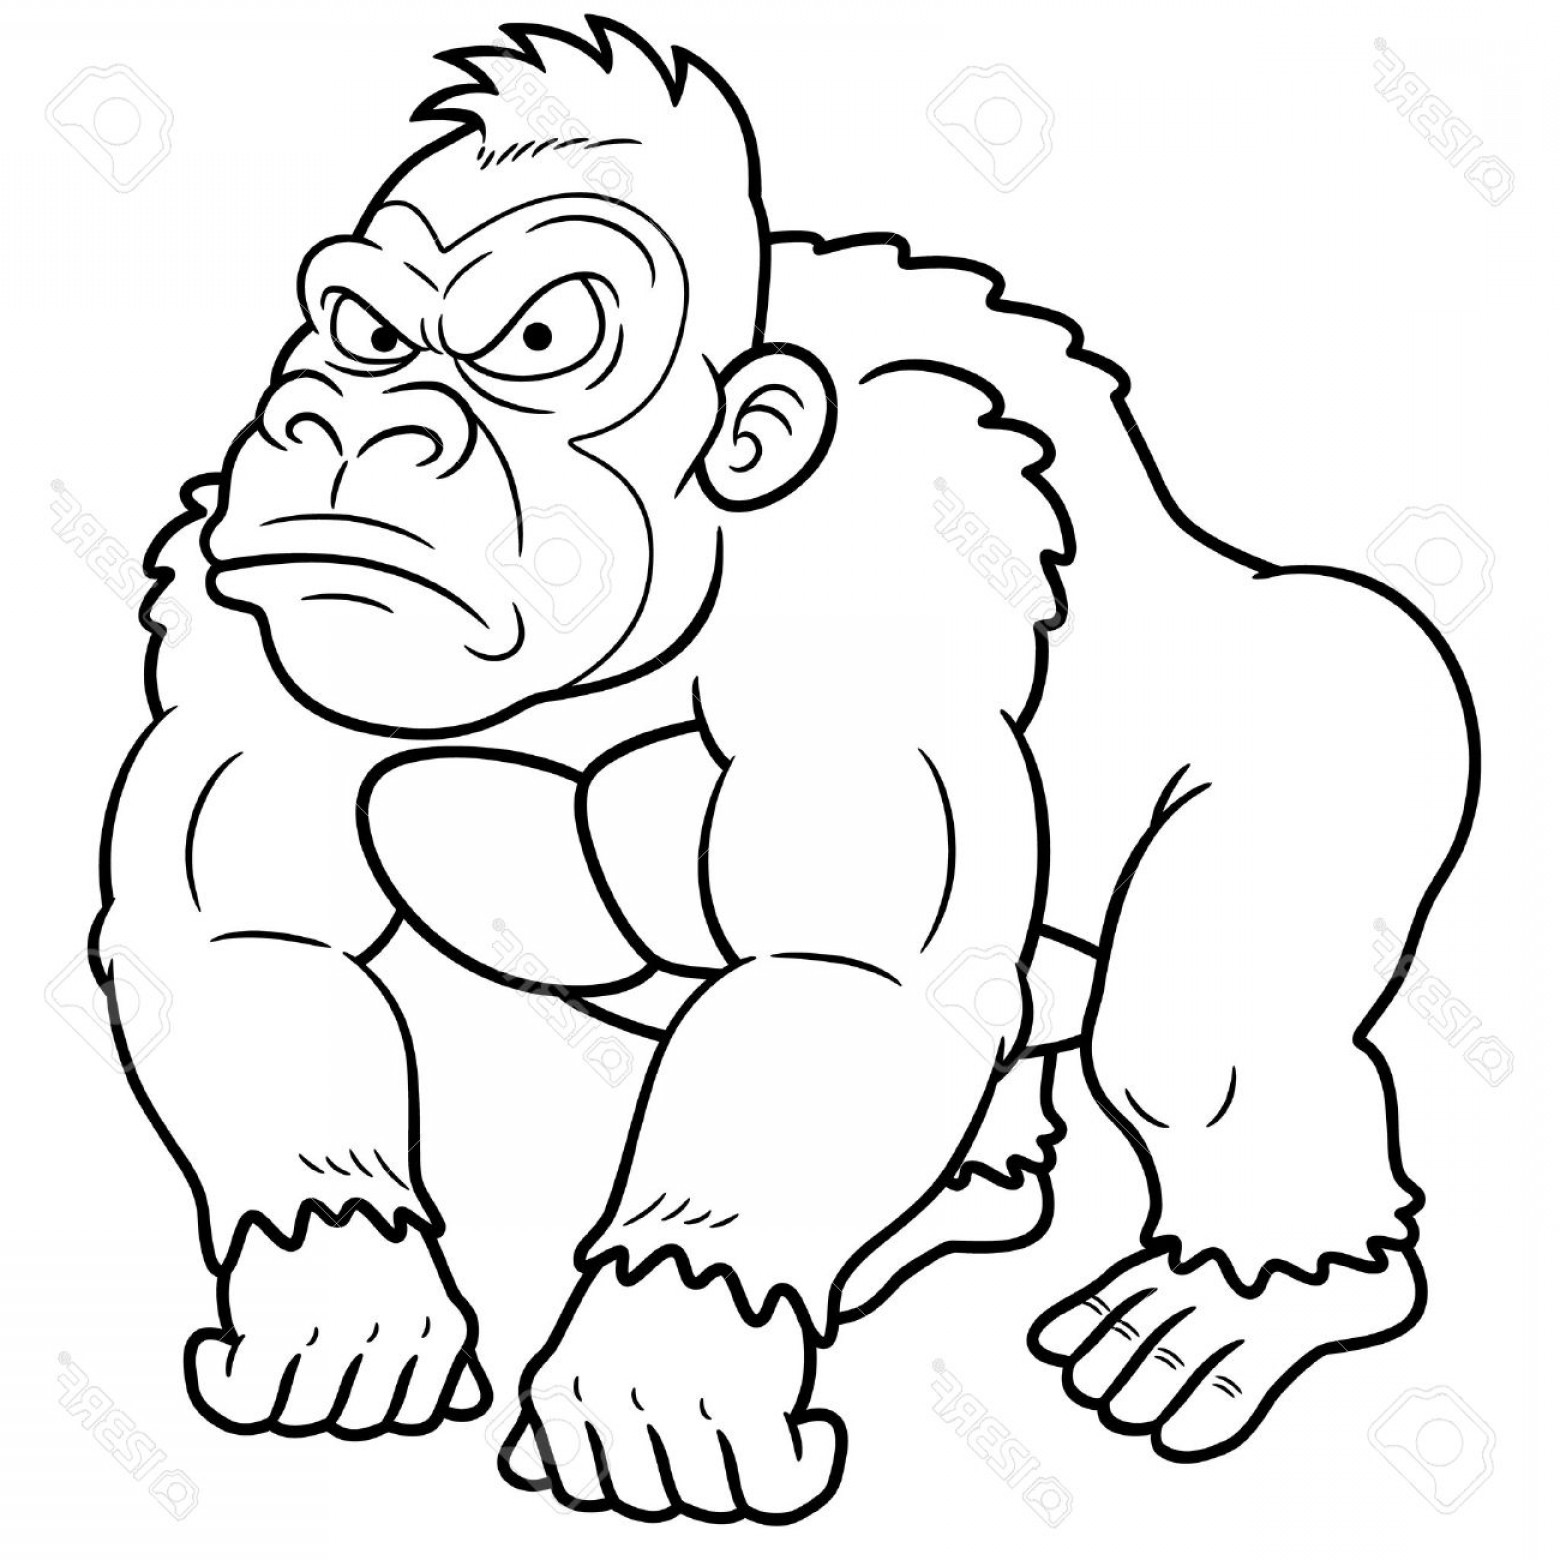 Drawings Of King Kong Vector: Photoillustration Of Gorilla Cartoon Coloring Book